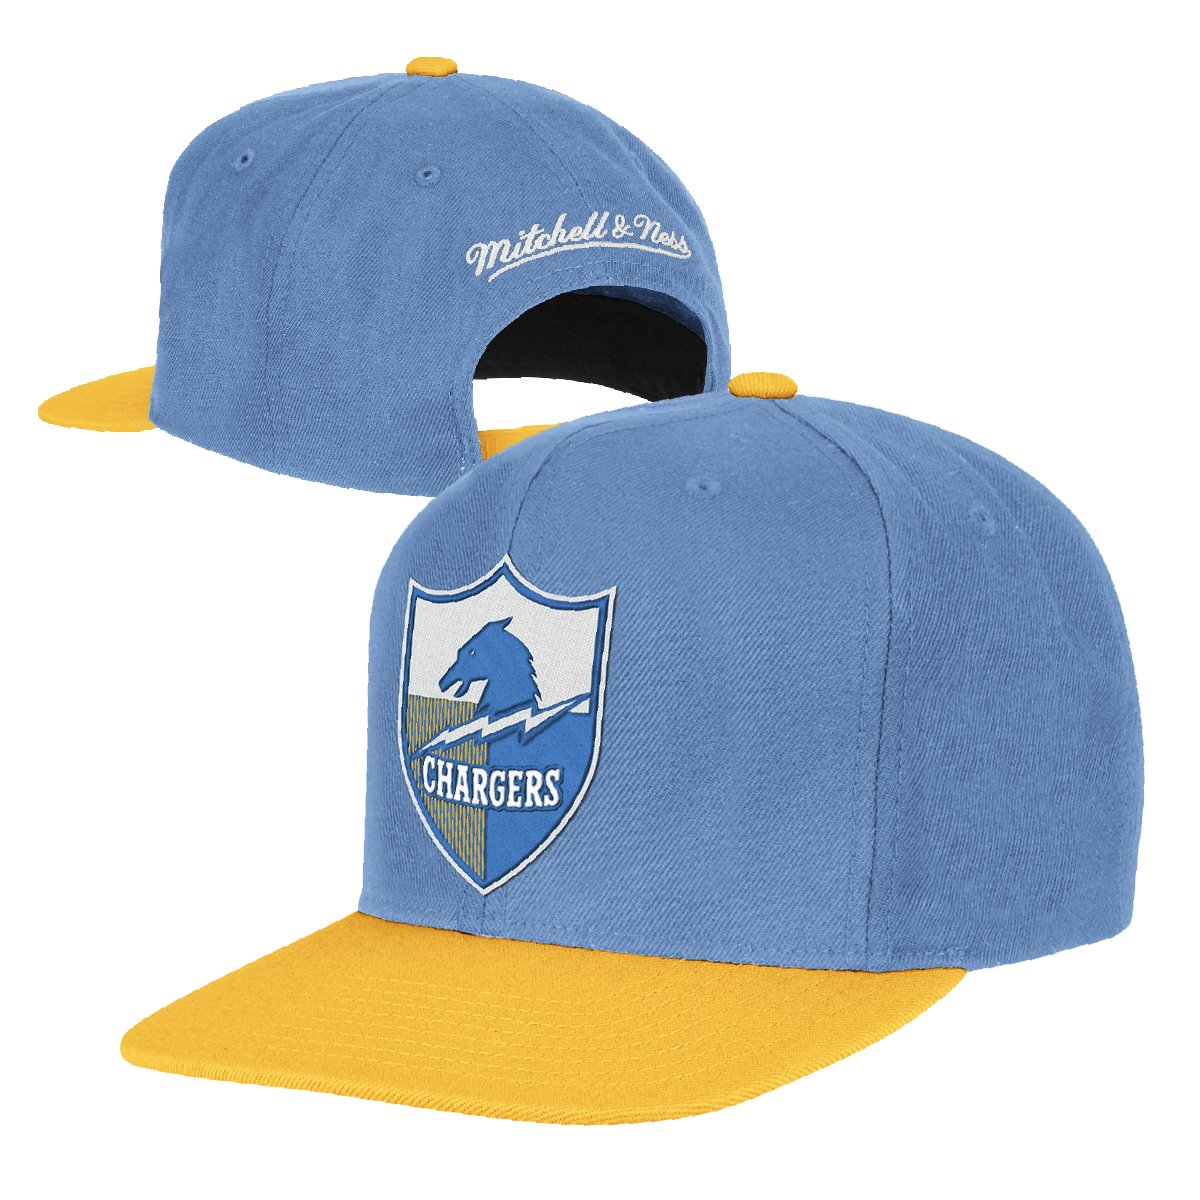 Amazon.com  San Diego Chargers Big Logo Blue Yellow Adjustable Snapback Hat    Cap  Clothing fa170c8547a